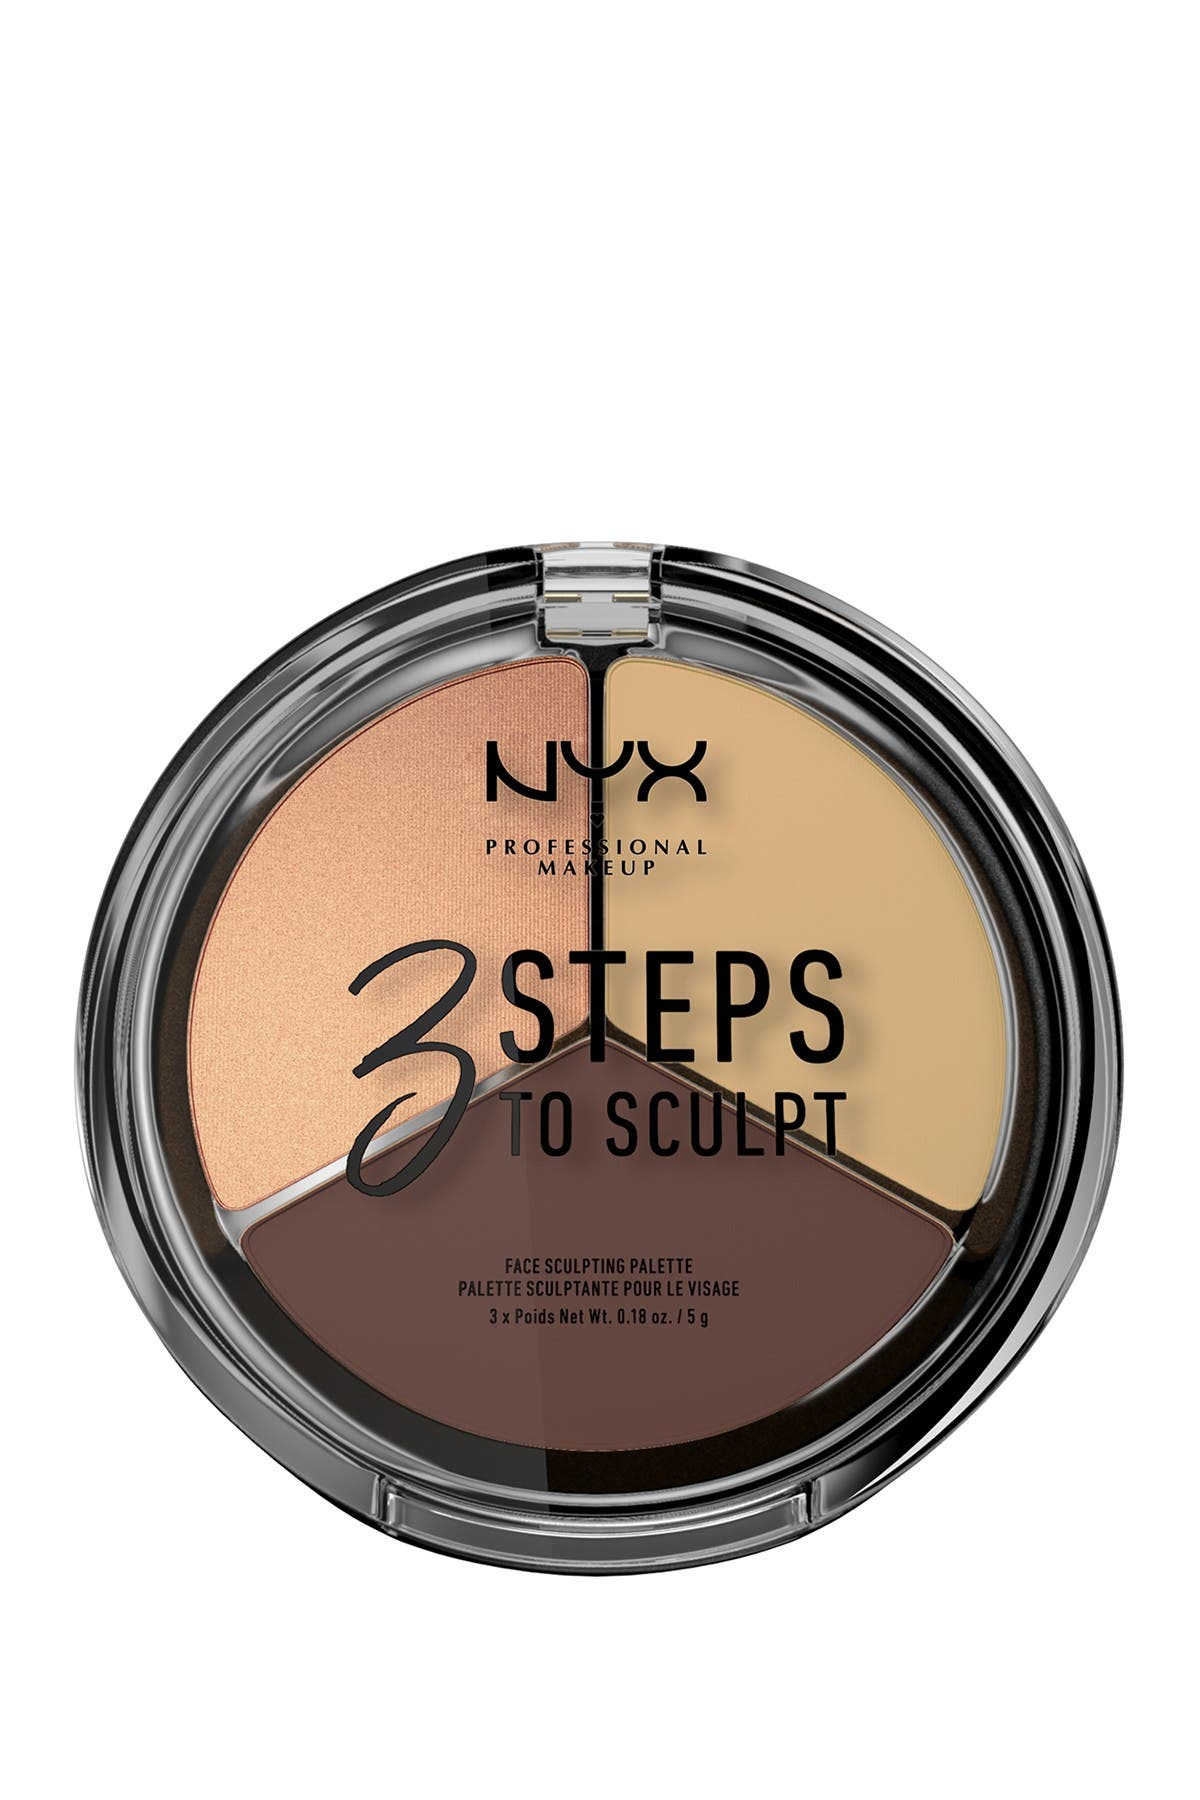 Image of NYX COSMETICS 3 Steps to Sculpt Face Sculpting Palette - Medium